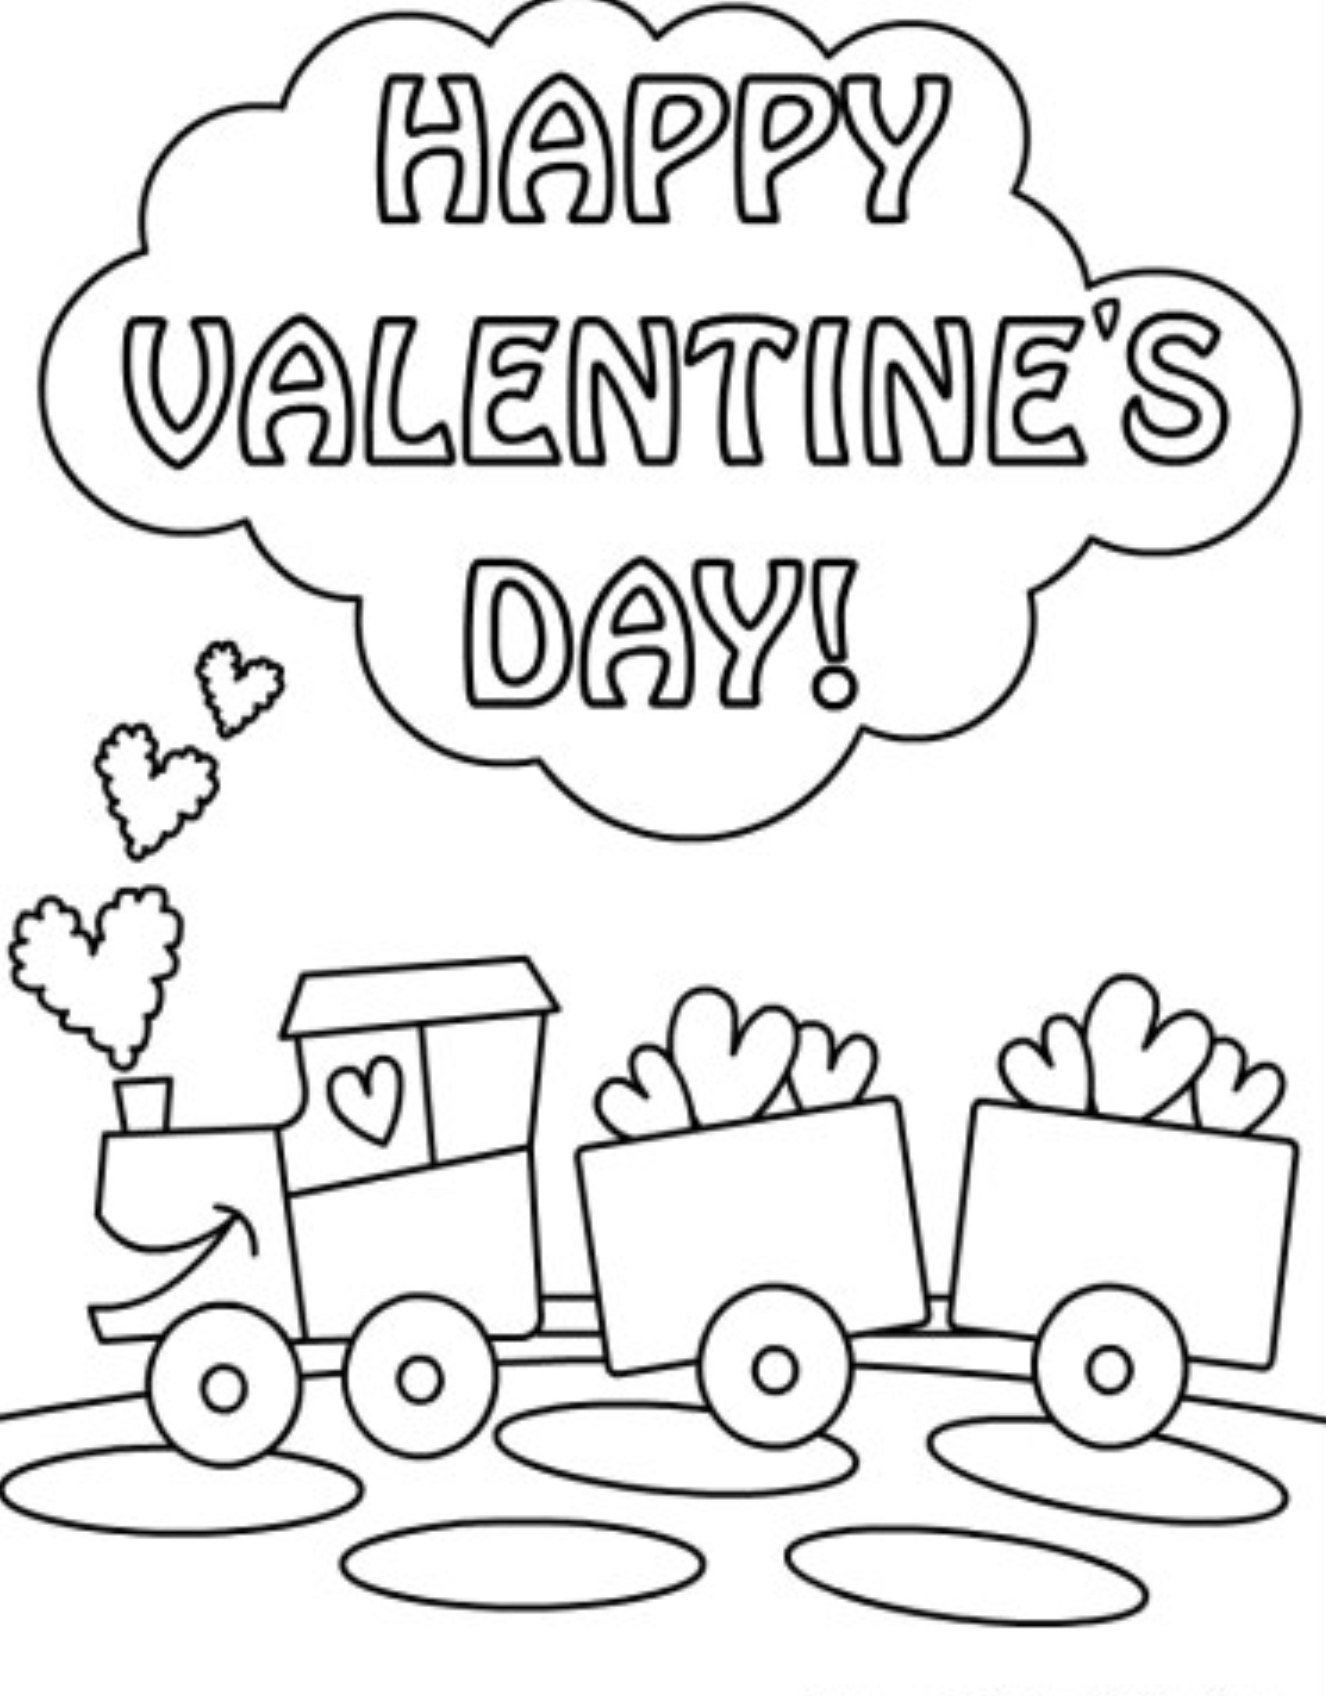 1326x1696 Breakthrough Happy Valentines Day Coloring Pages For Kids